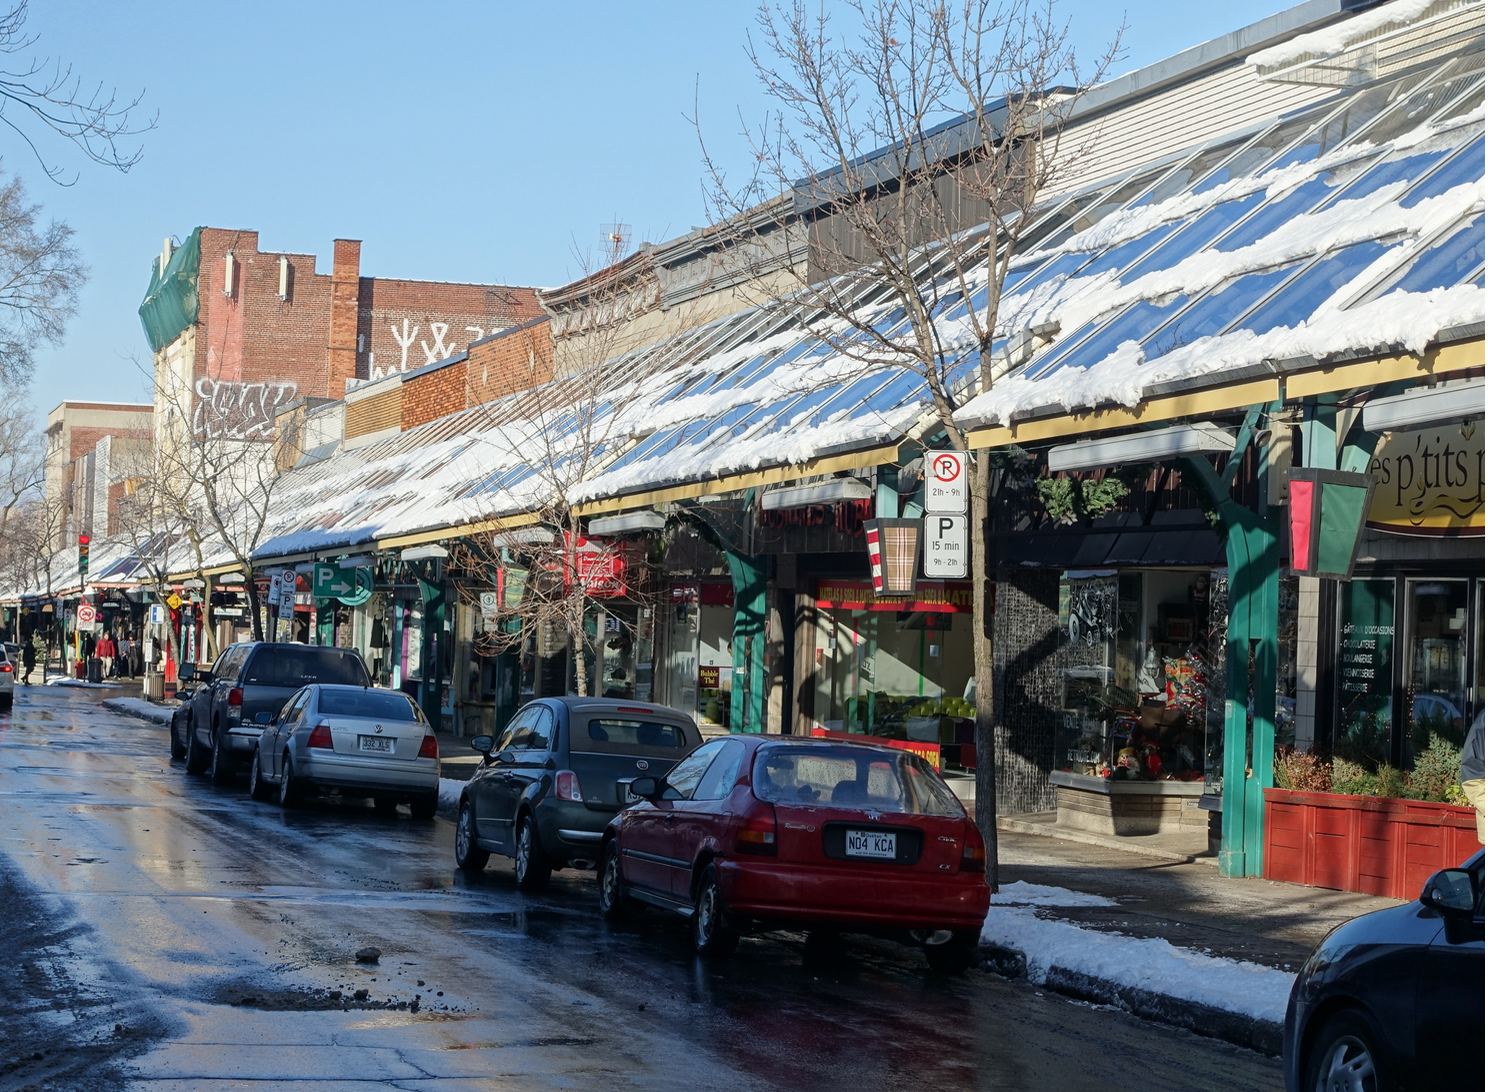 Rue St-Hubert is a five-block long street with over 400 mom and pop businesses - from thrift stores to wedding shops.  A canopy over the sidewalk, protect pedestrians from the elements and creates a unique sense of place.